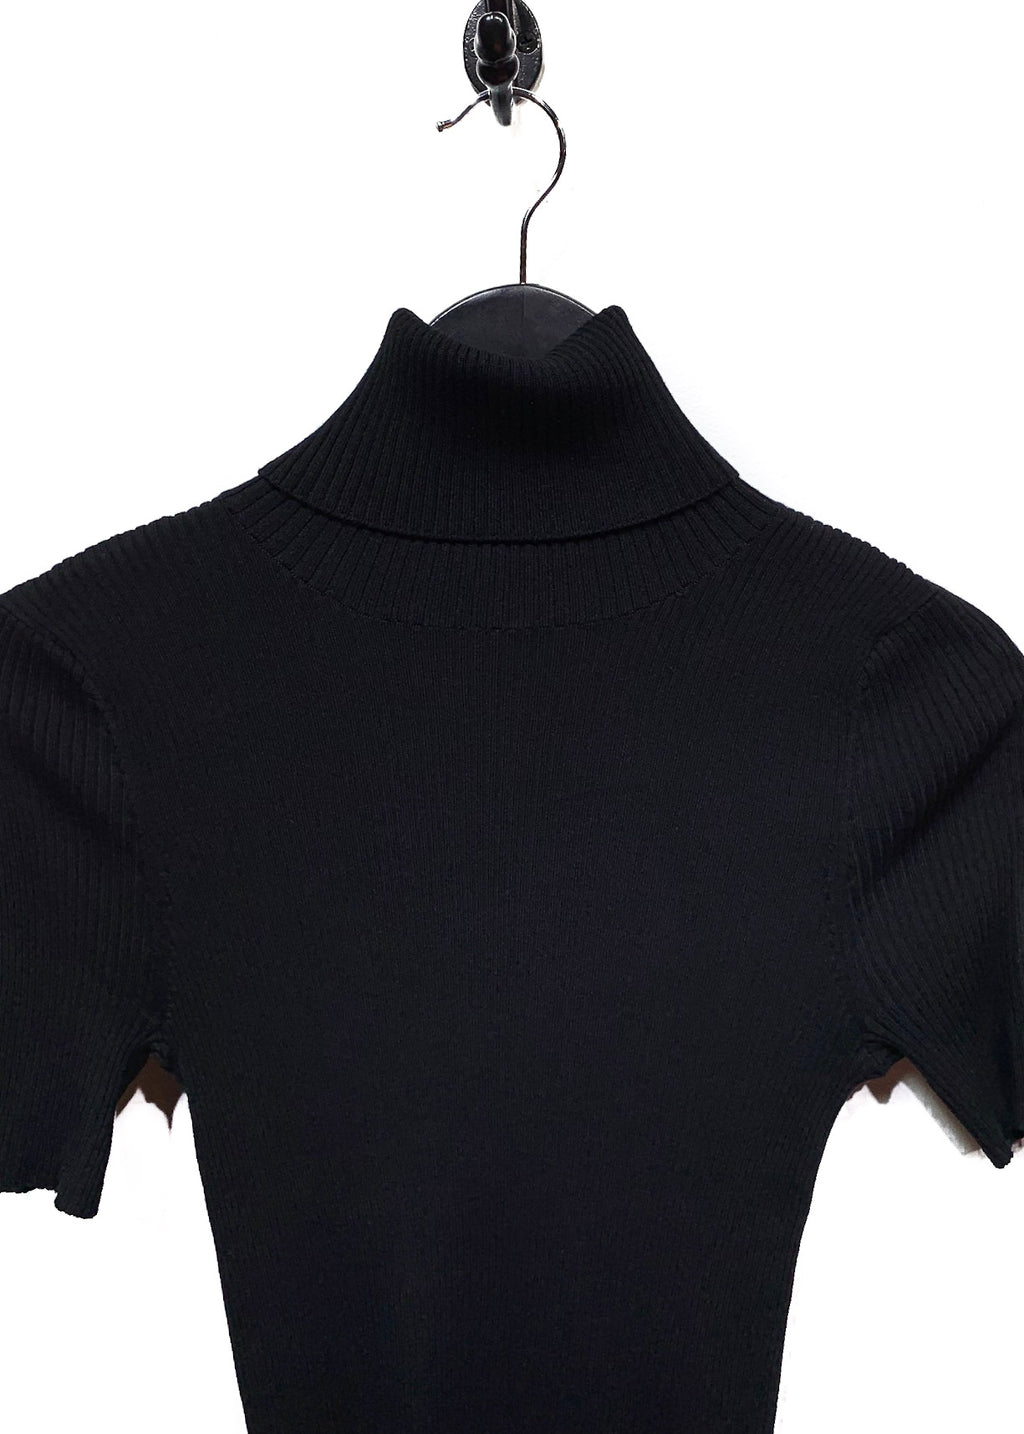 Alexander Wang Black Zipper Turtleneck Sweater